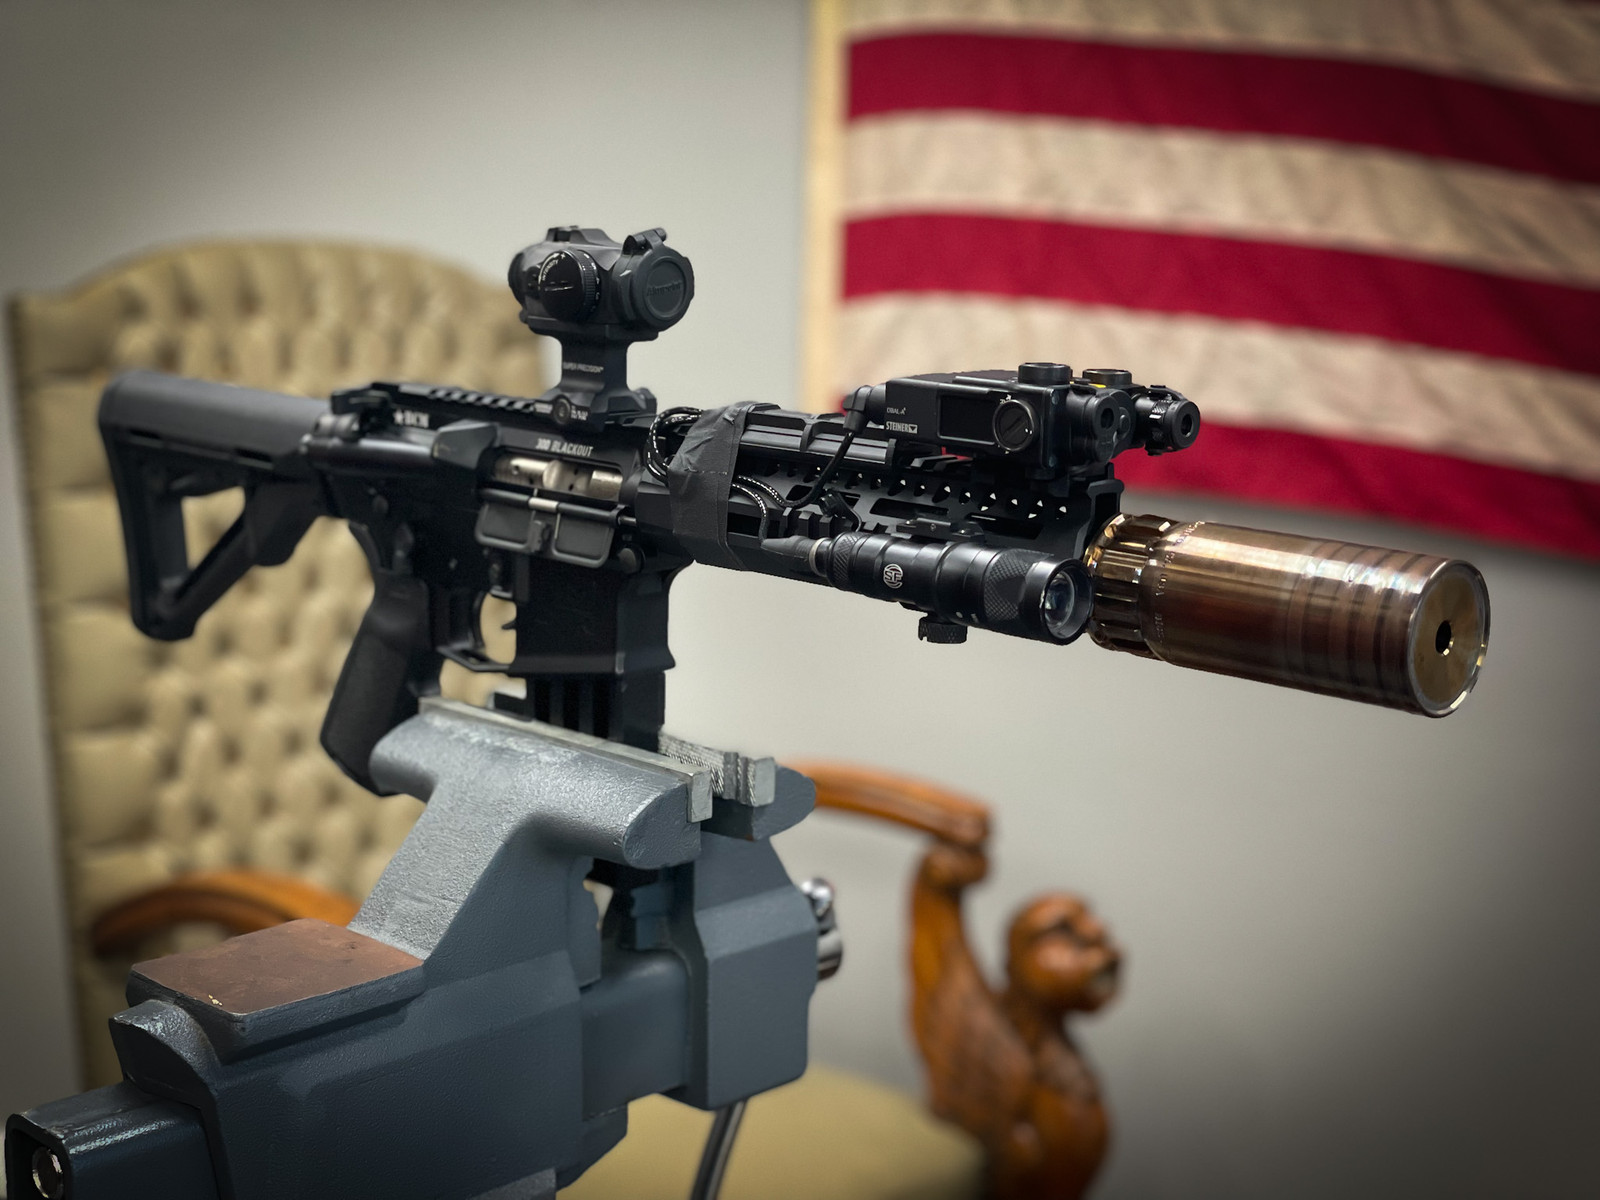 Biscuit suppressor mounted on a rifle with American flag background.